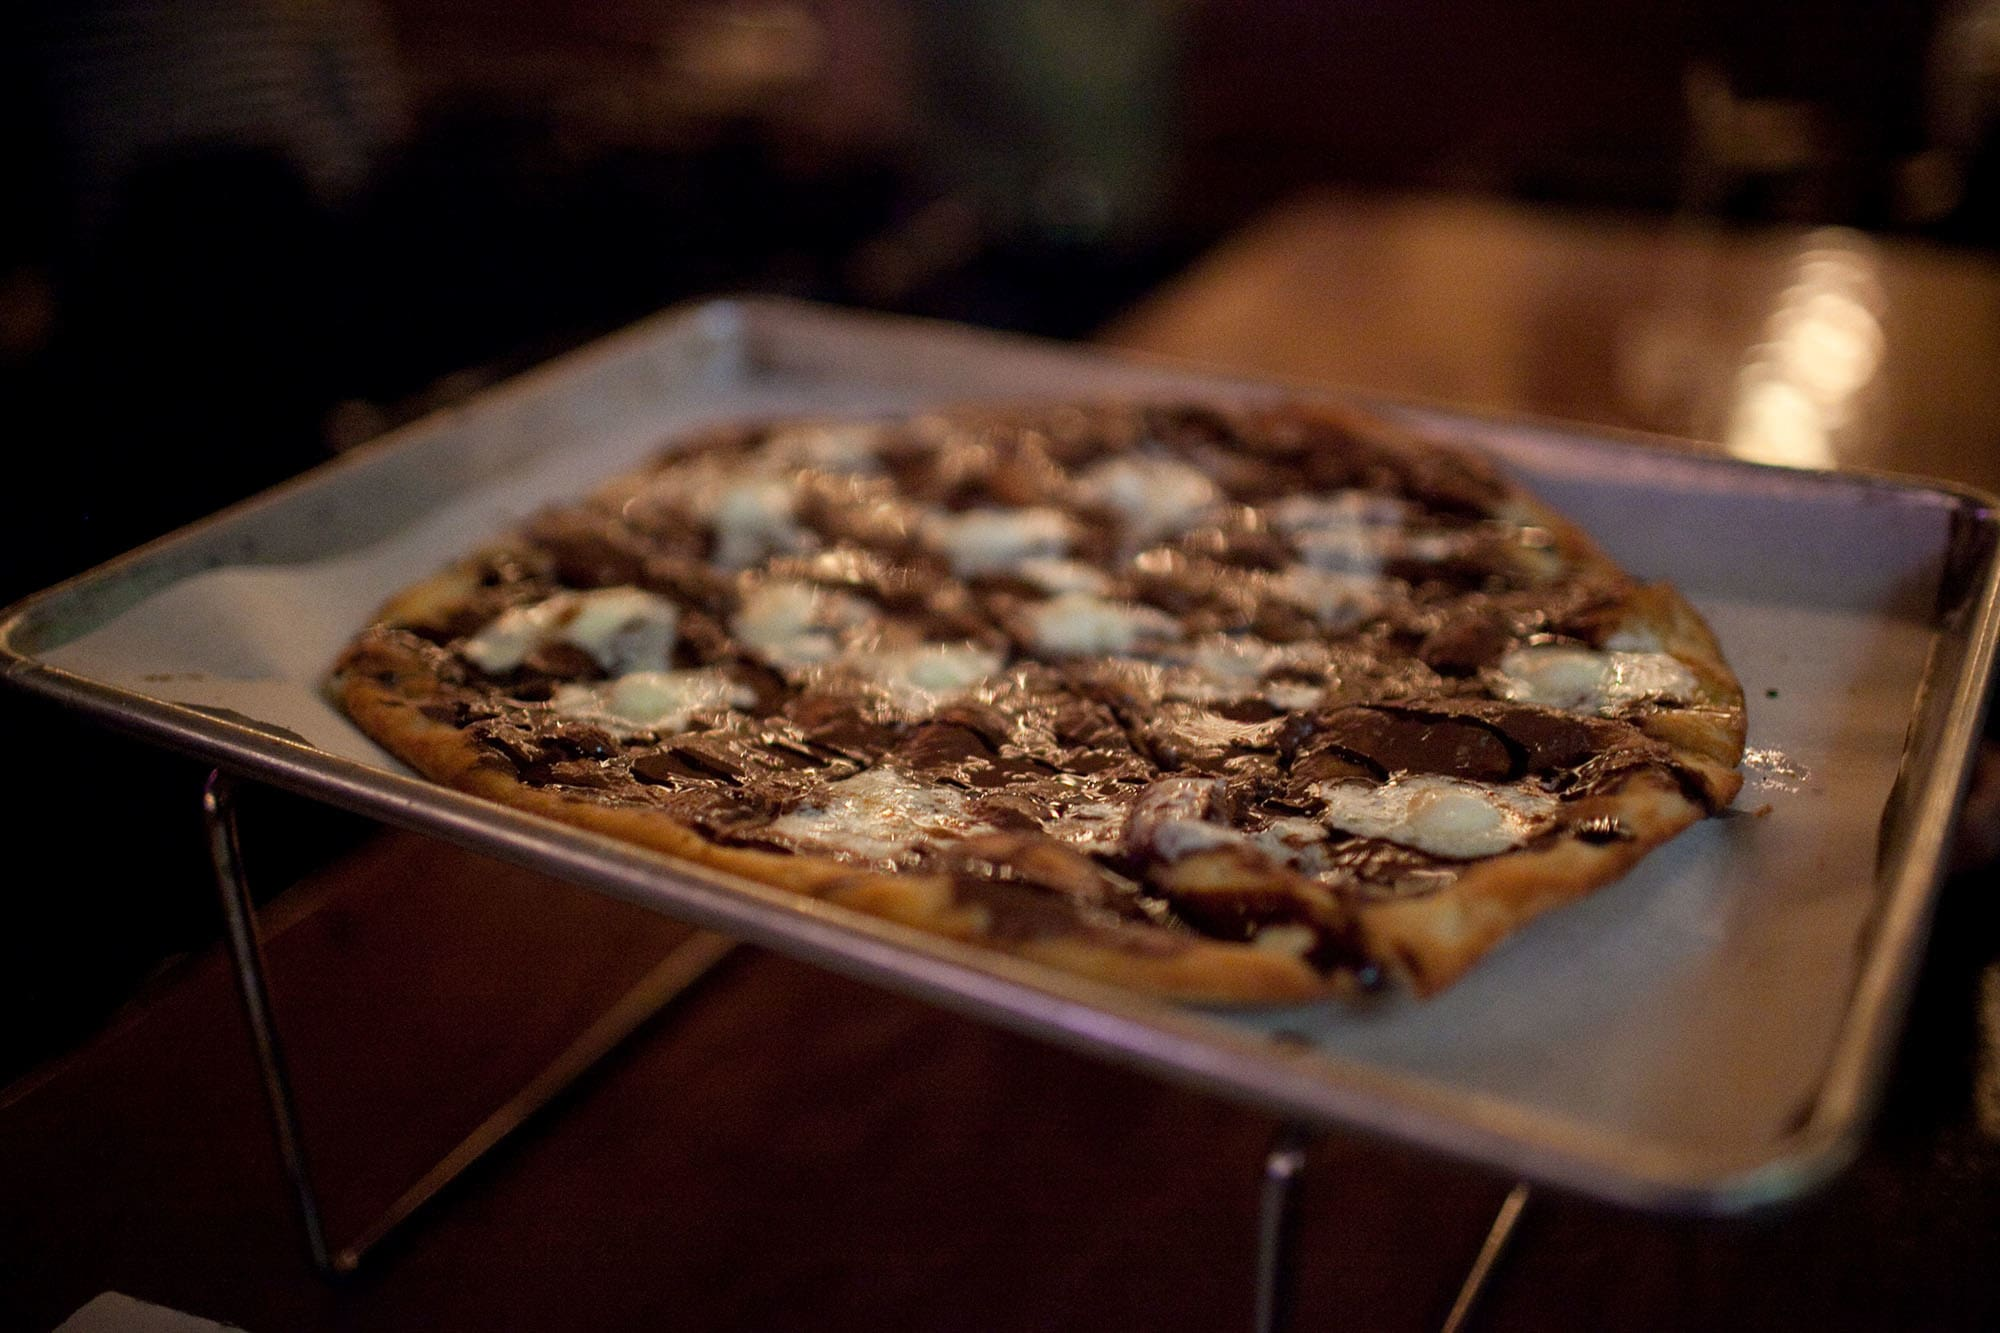 My 30th Birthday - Chocolate dessert pizza at Piece Pizza in Chicago, Illinois